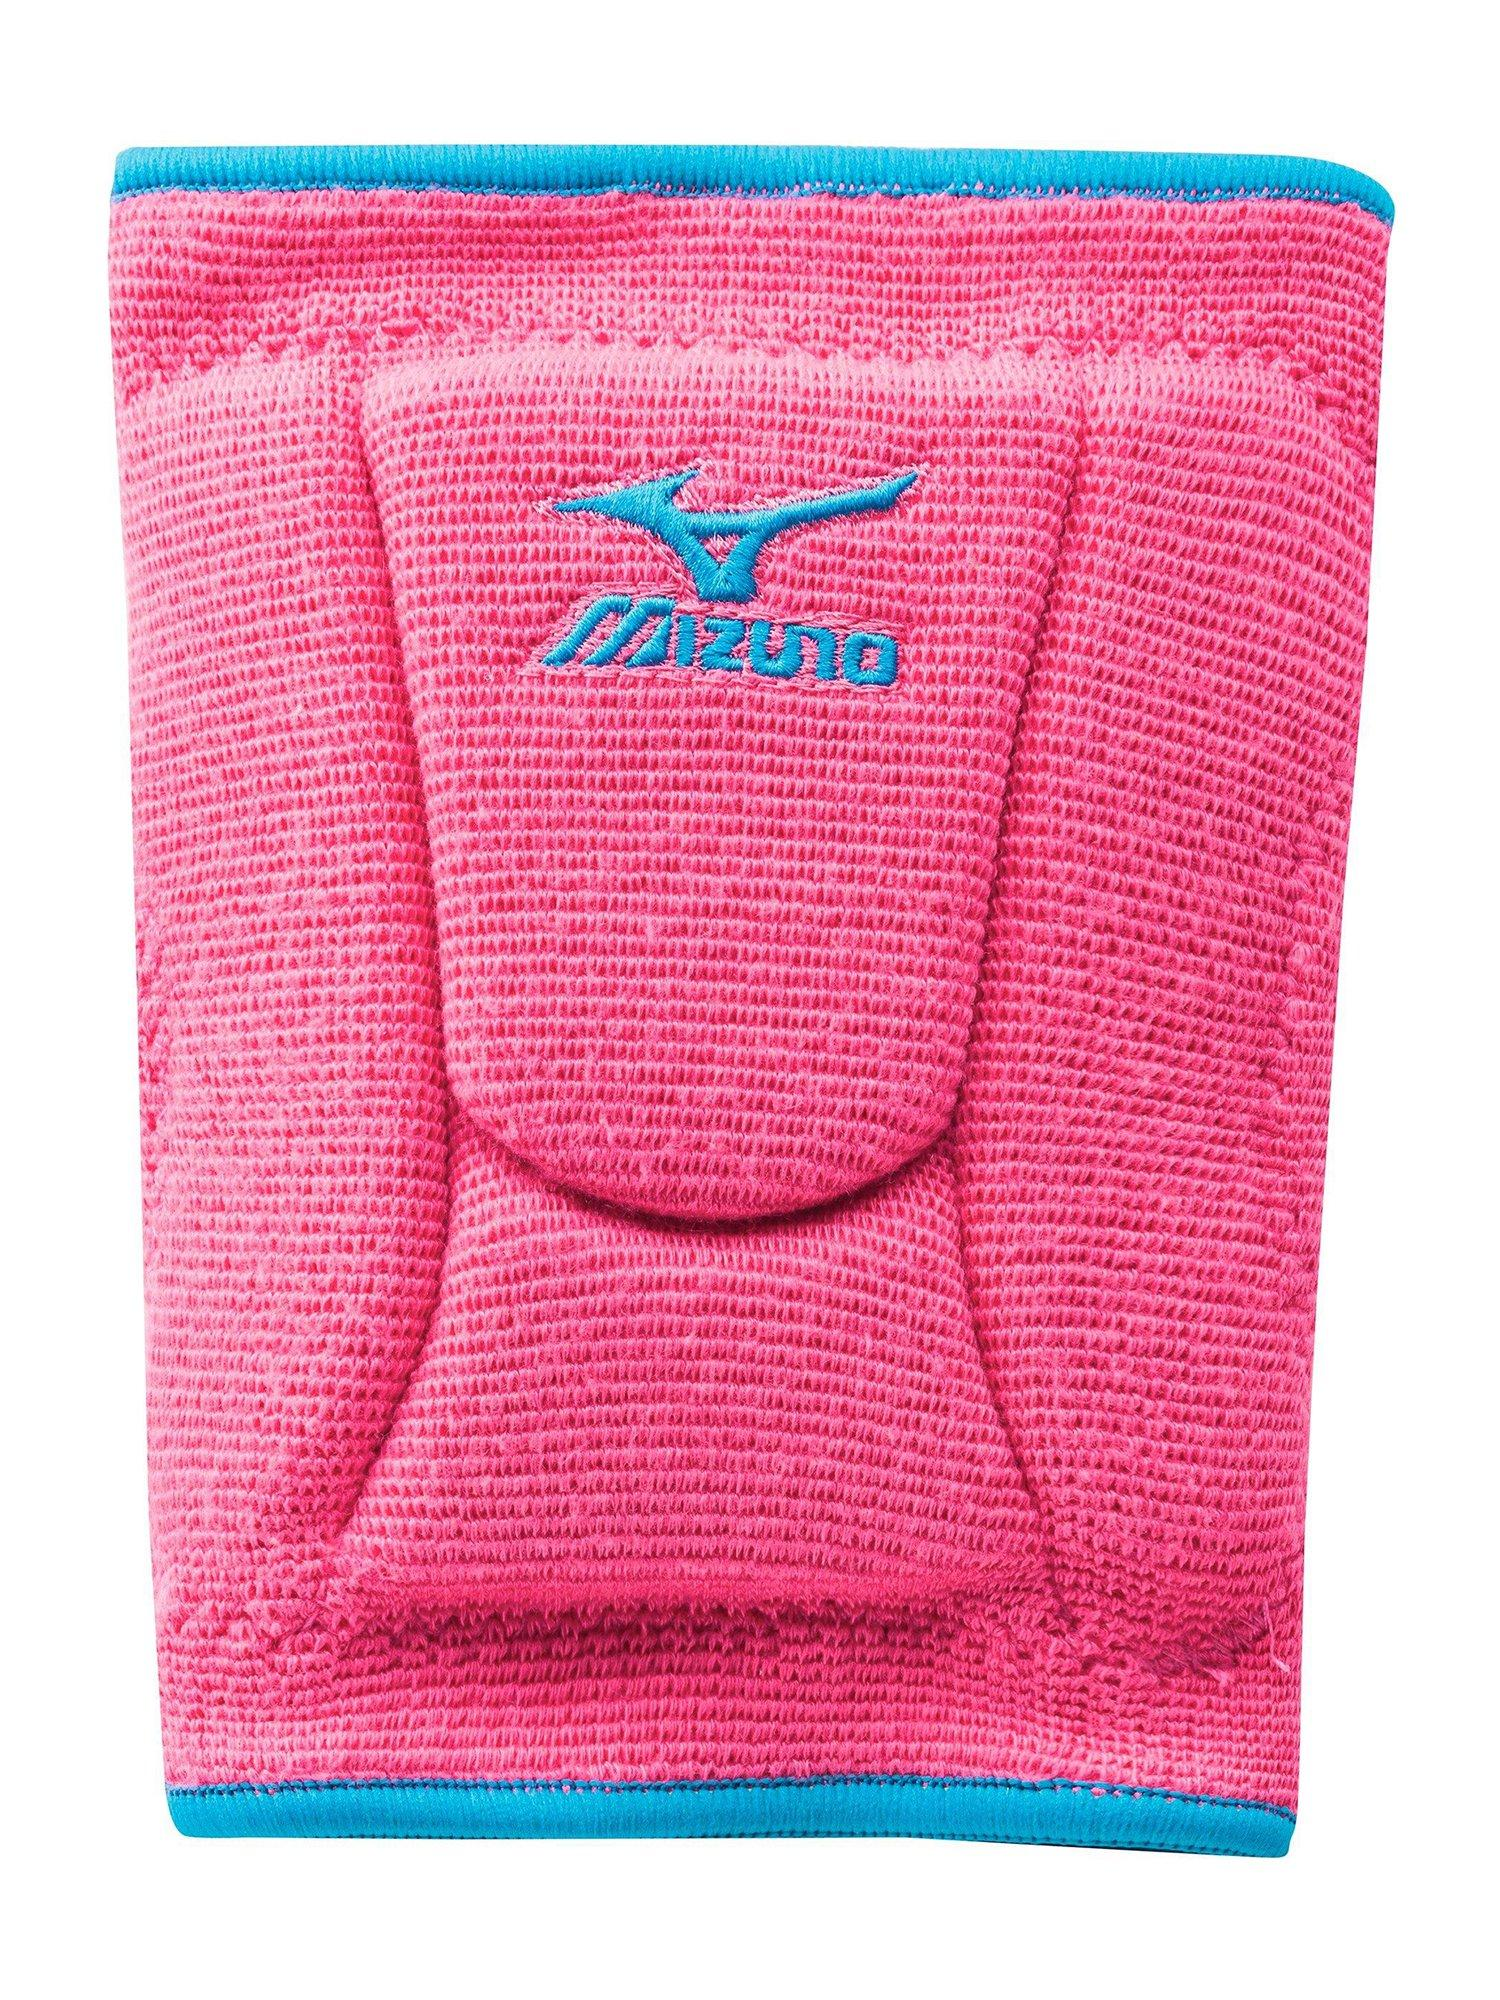 Mizuno Lr6 Highlighter Volleyball Knee Pads Ebay Pad Kneepad Asics V2 Stock Photo Picture 1 Of 2